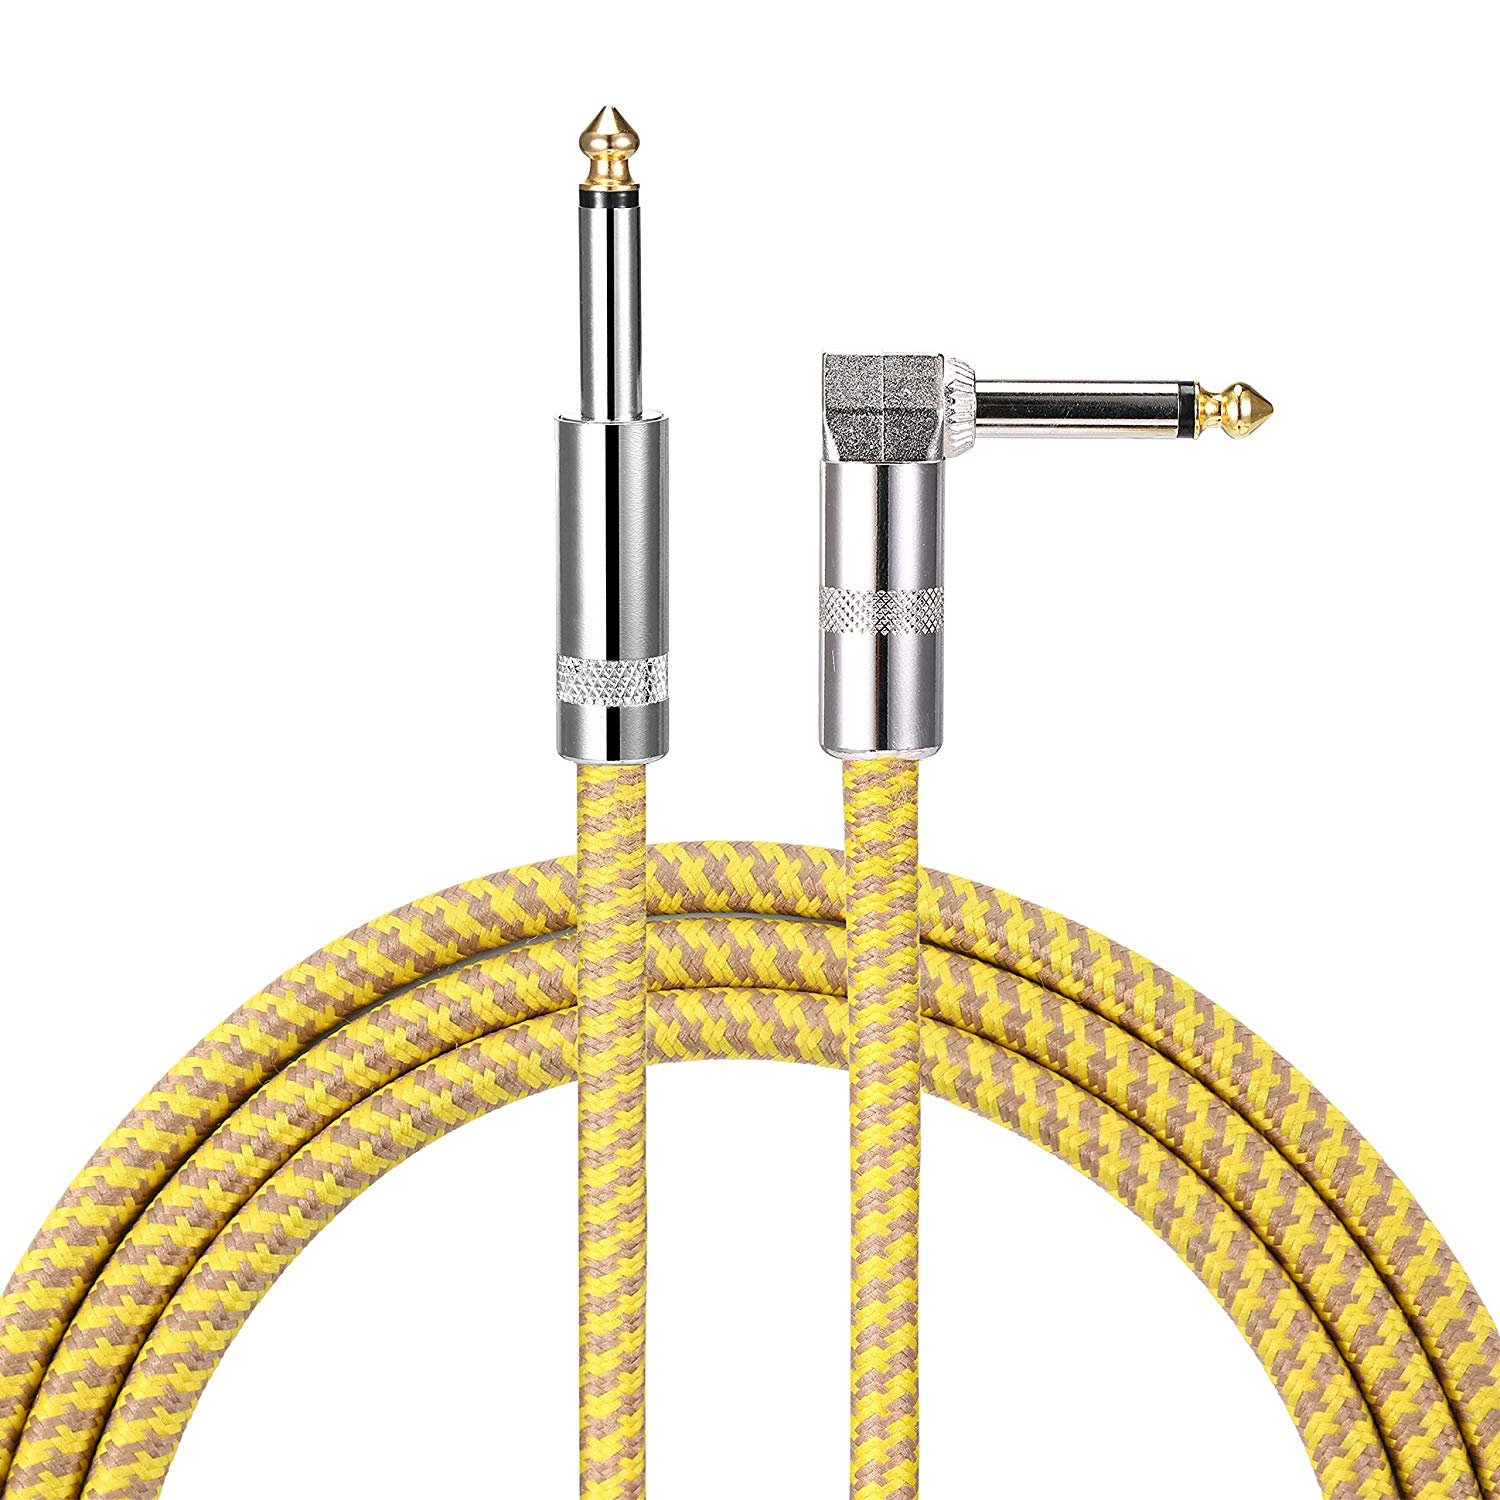 Asmuse Guitar Cable 3M Noiseless Right Angle to Straight 1//4 6.3mm Plugs Retro Braided Instrument Cable Shielding Pro Phono Cord for Acoustic Classical Electric Guitar Bass Keyboard to Amps